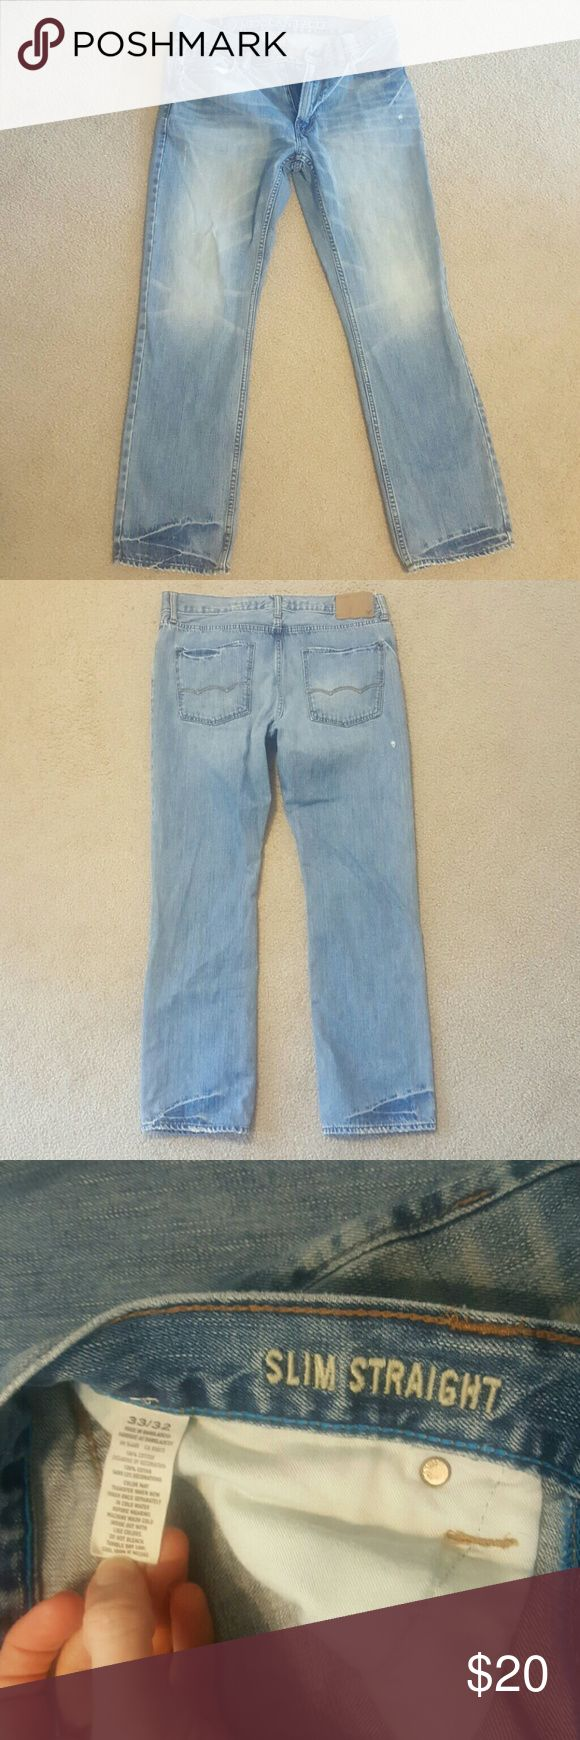 Mens light to medium wash American Eagle jeans Mens light to medium wash American Eagle jeans in size 33x32. Great condition. American Eagle Outfitters Jeans Slim Straight